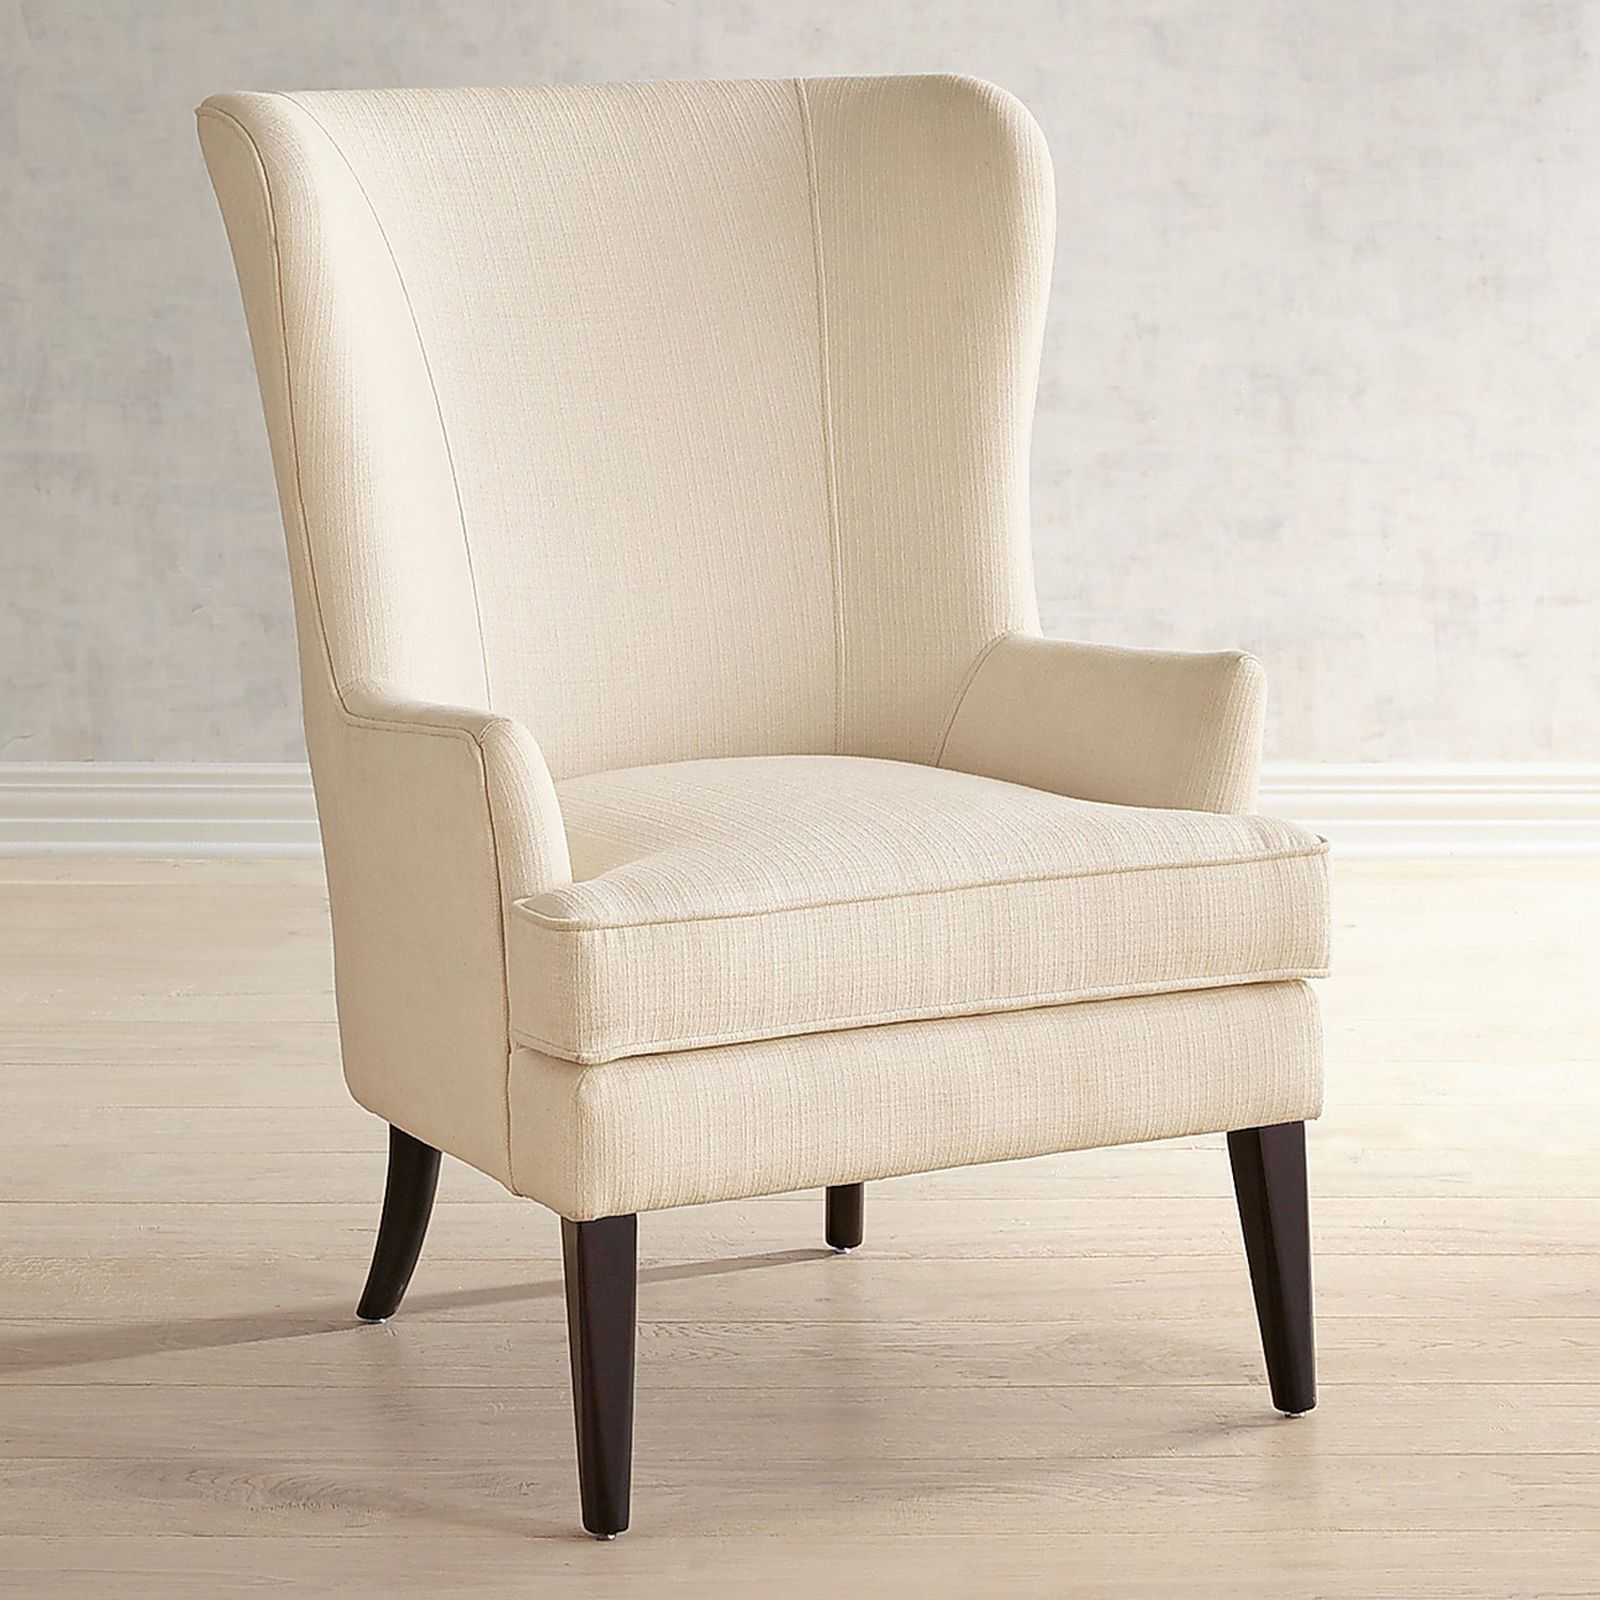 Asher Flynn Floral Print Chair White bedroom chair